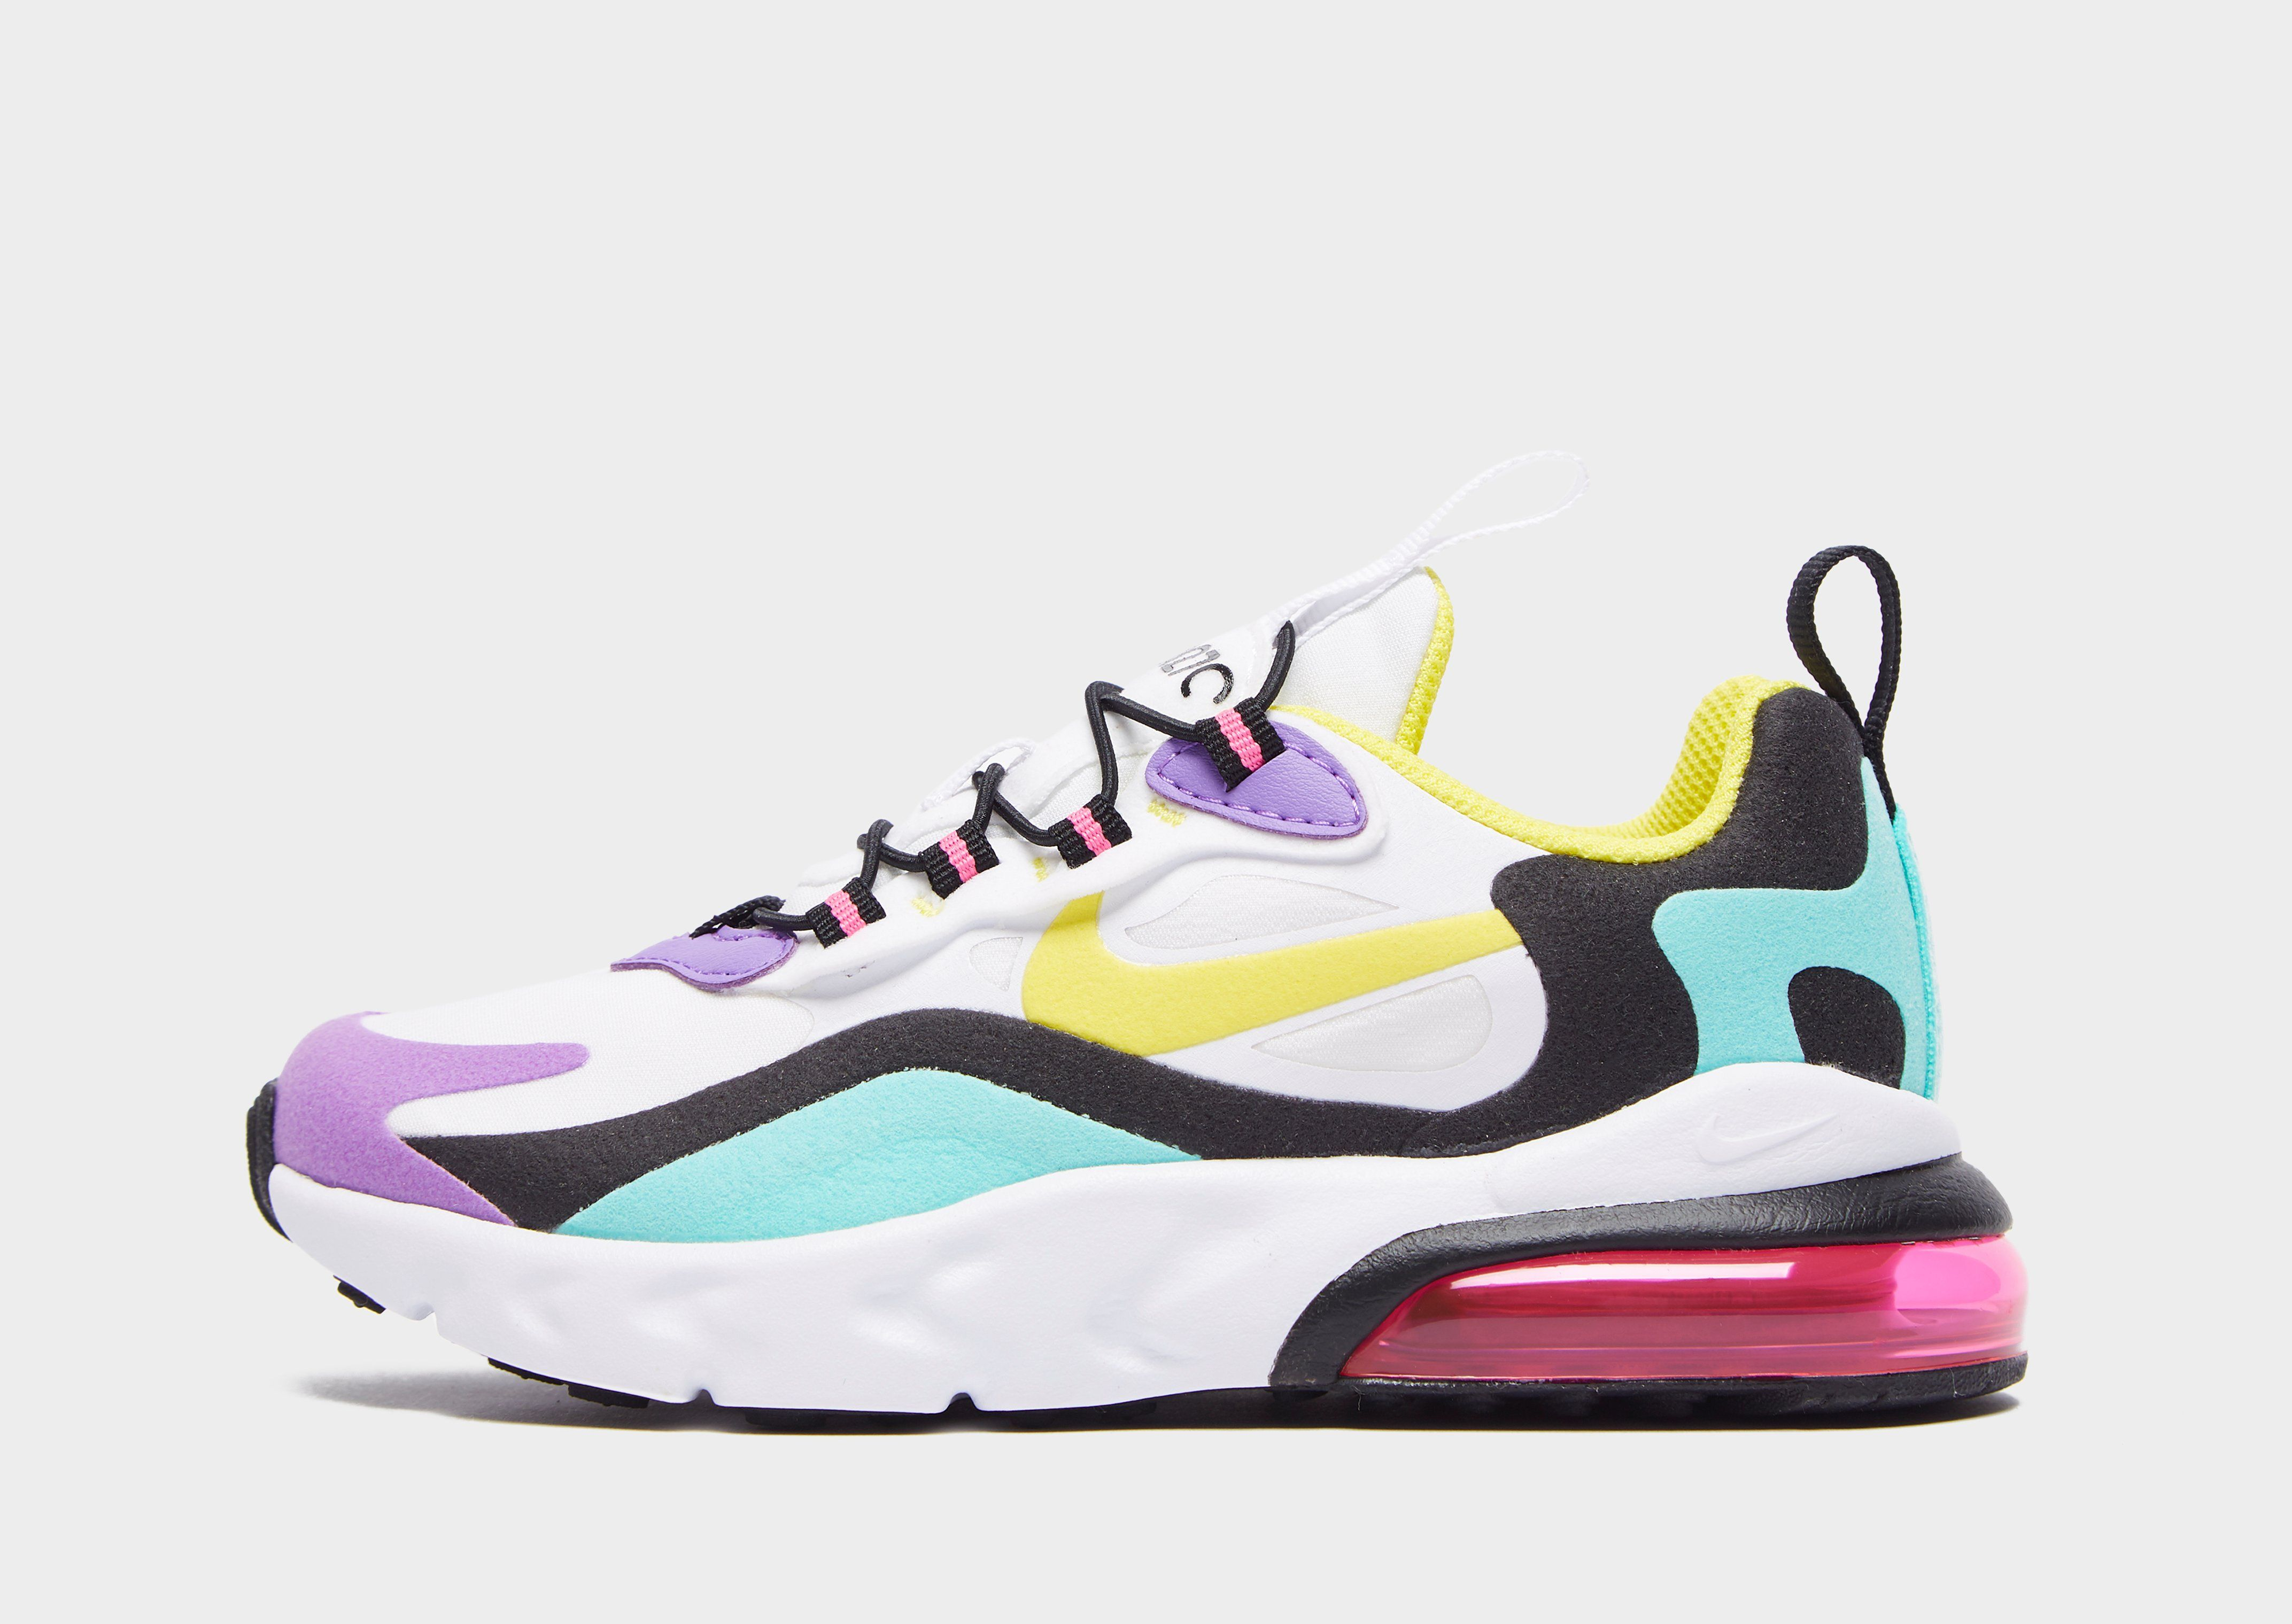 los angeles 409e1 4ed60 Nike Air Max 270 RT Younger Kids' Shoe | JD Sports